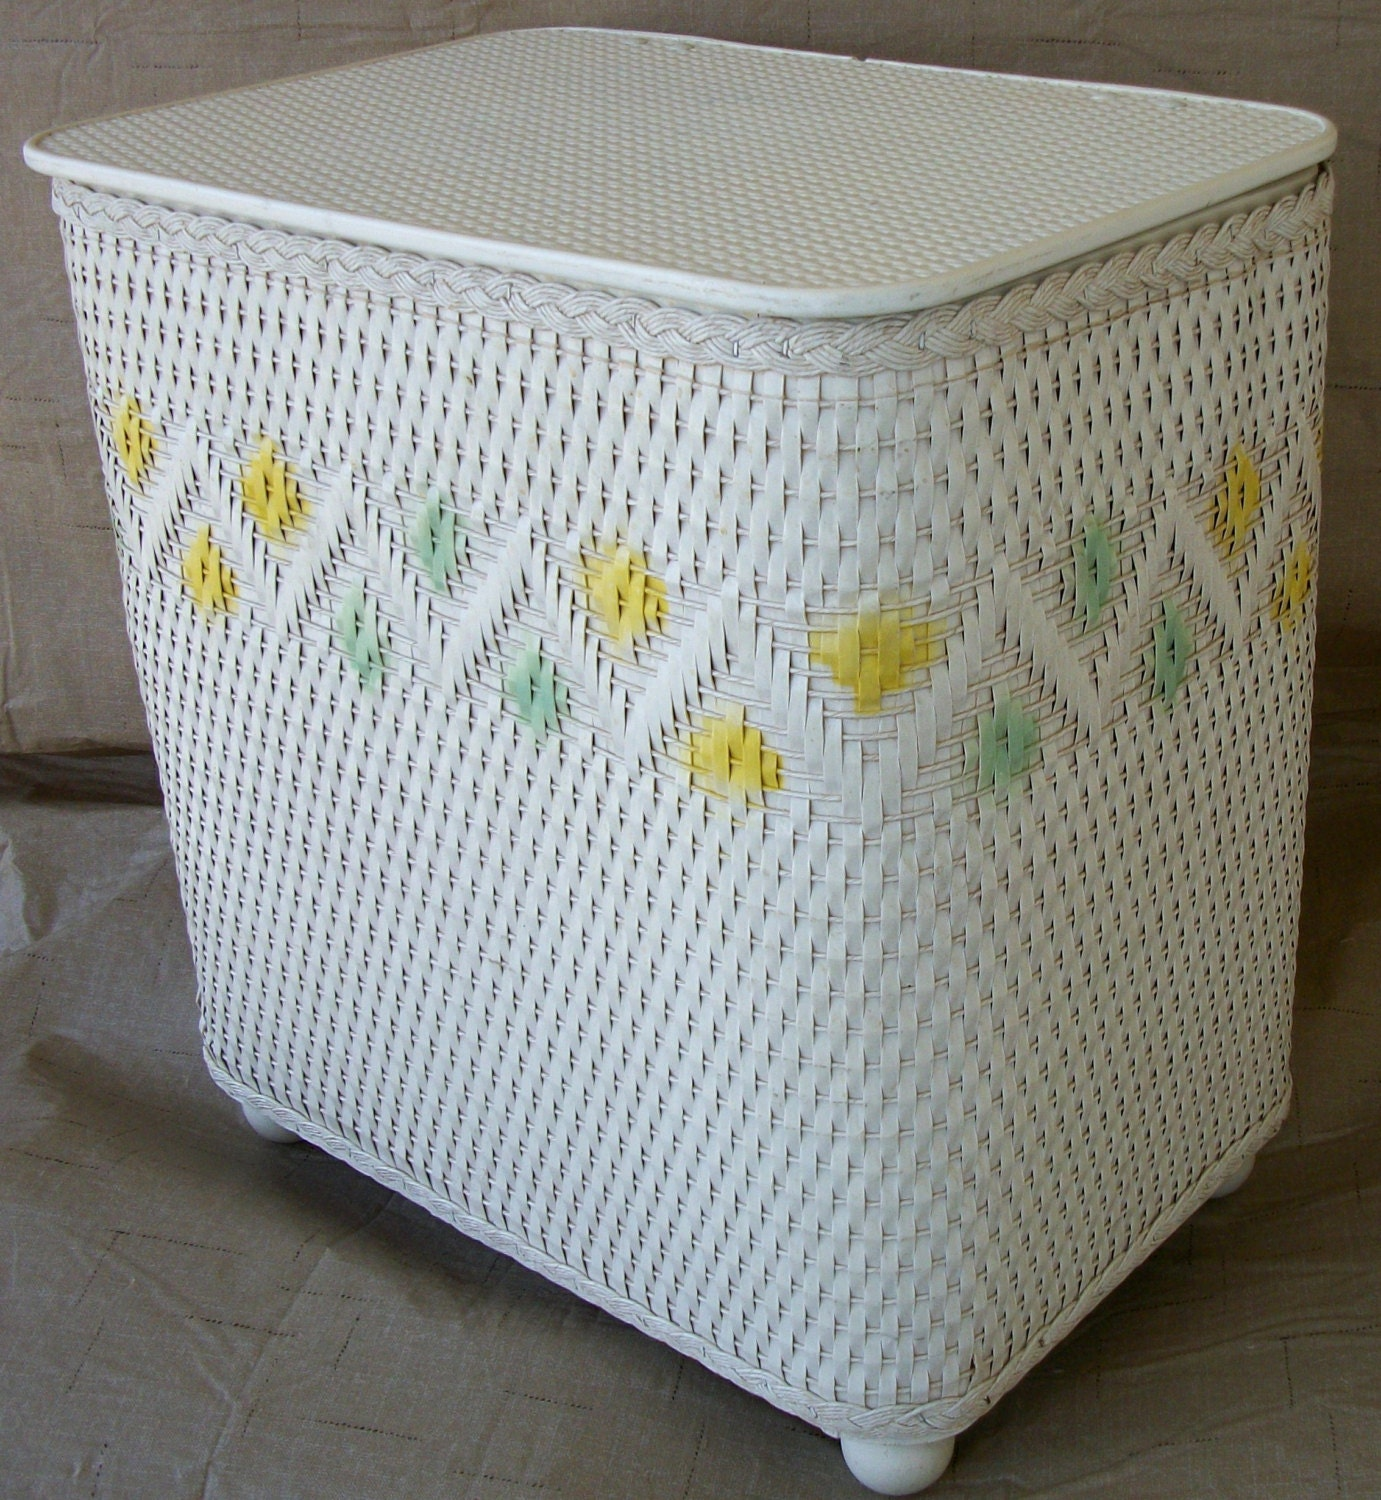 Vintage wicker laundry hamper pastels - Rattan laundry hamper ...